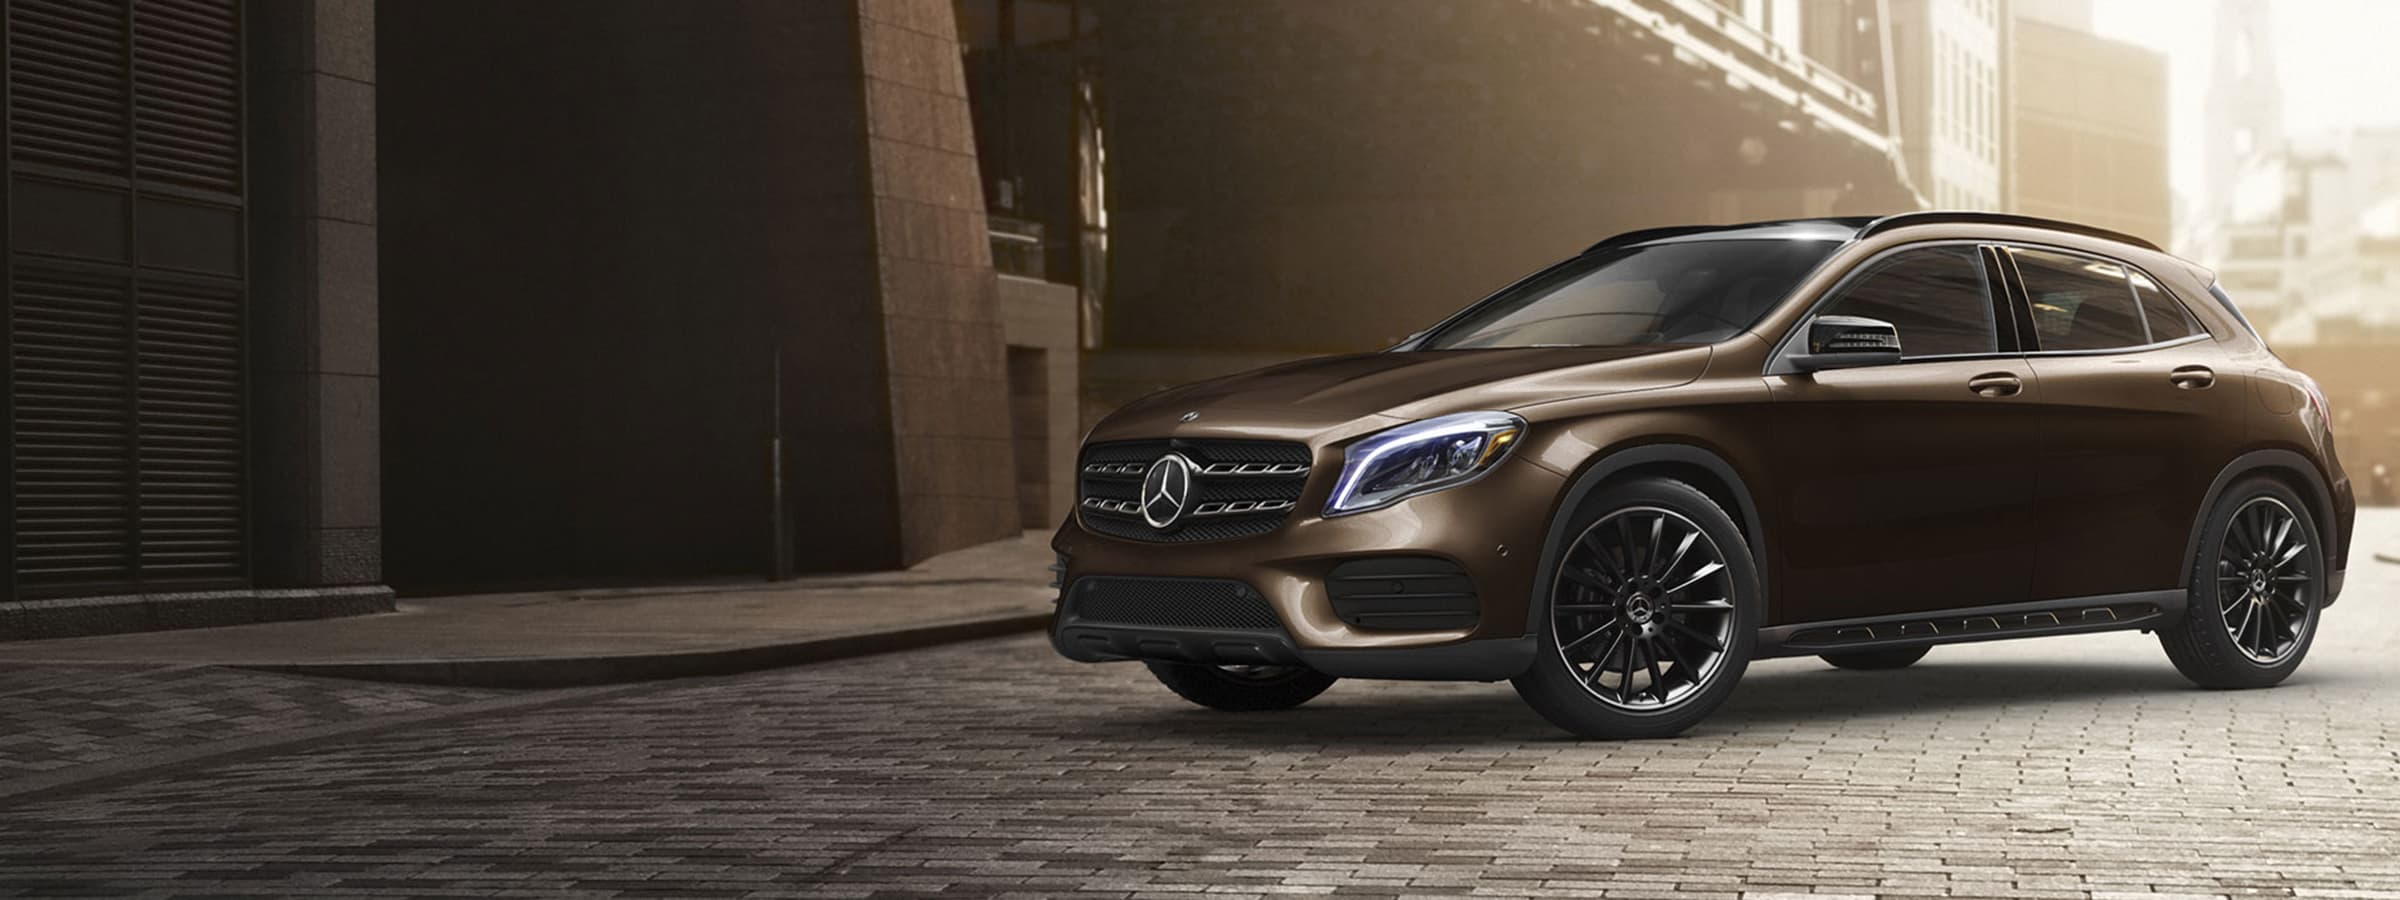 2019 Mercedes-Benz GLA SUV Info, Specs, and Images